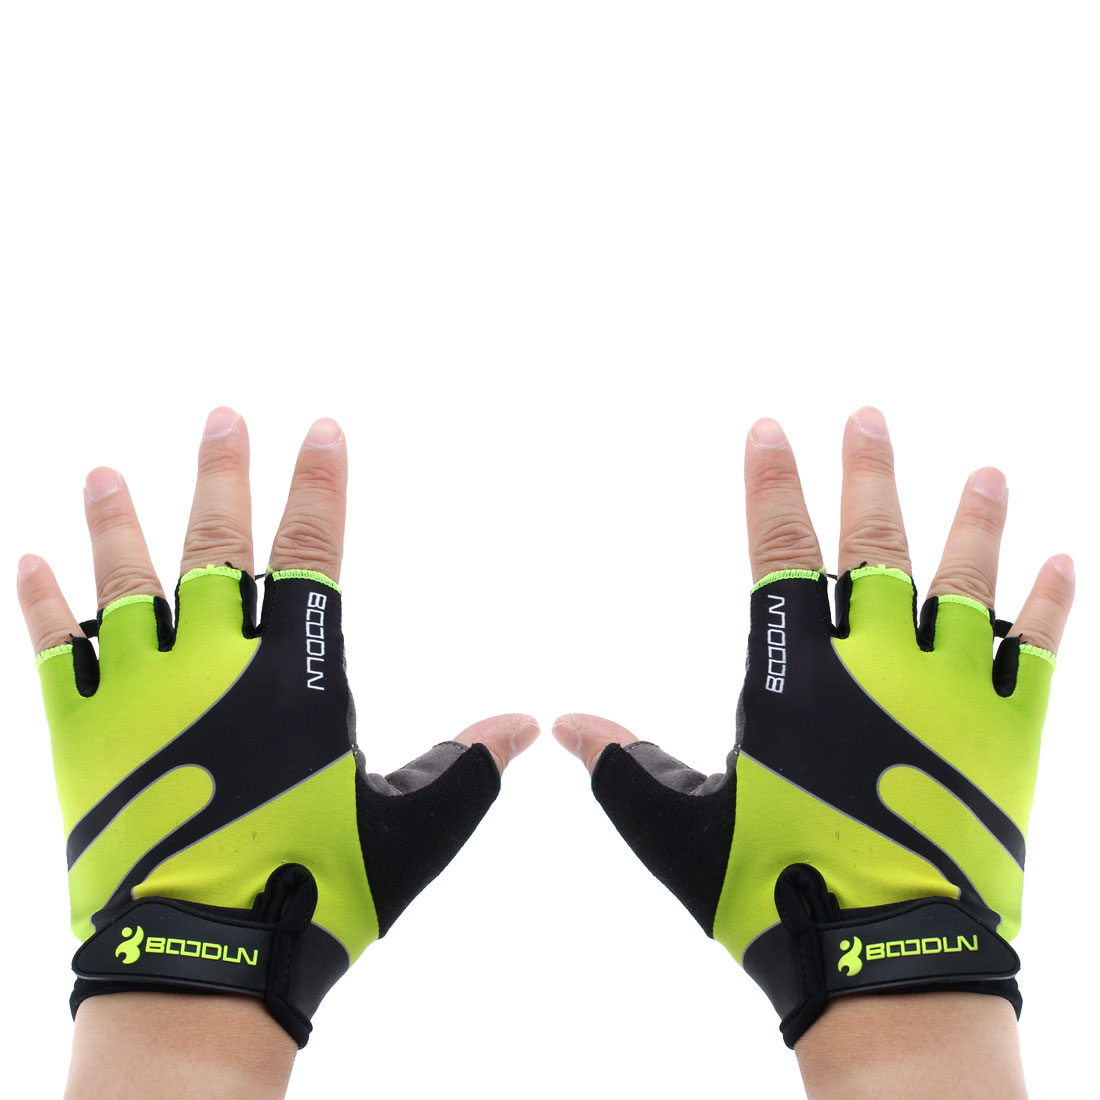 BOODUN Authorized Polyester Exercise Sports Lifting Training Bodybuilding Wrist Protector Half Finger Fitness Gloves Fluorescence Green L Pair